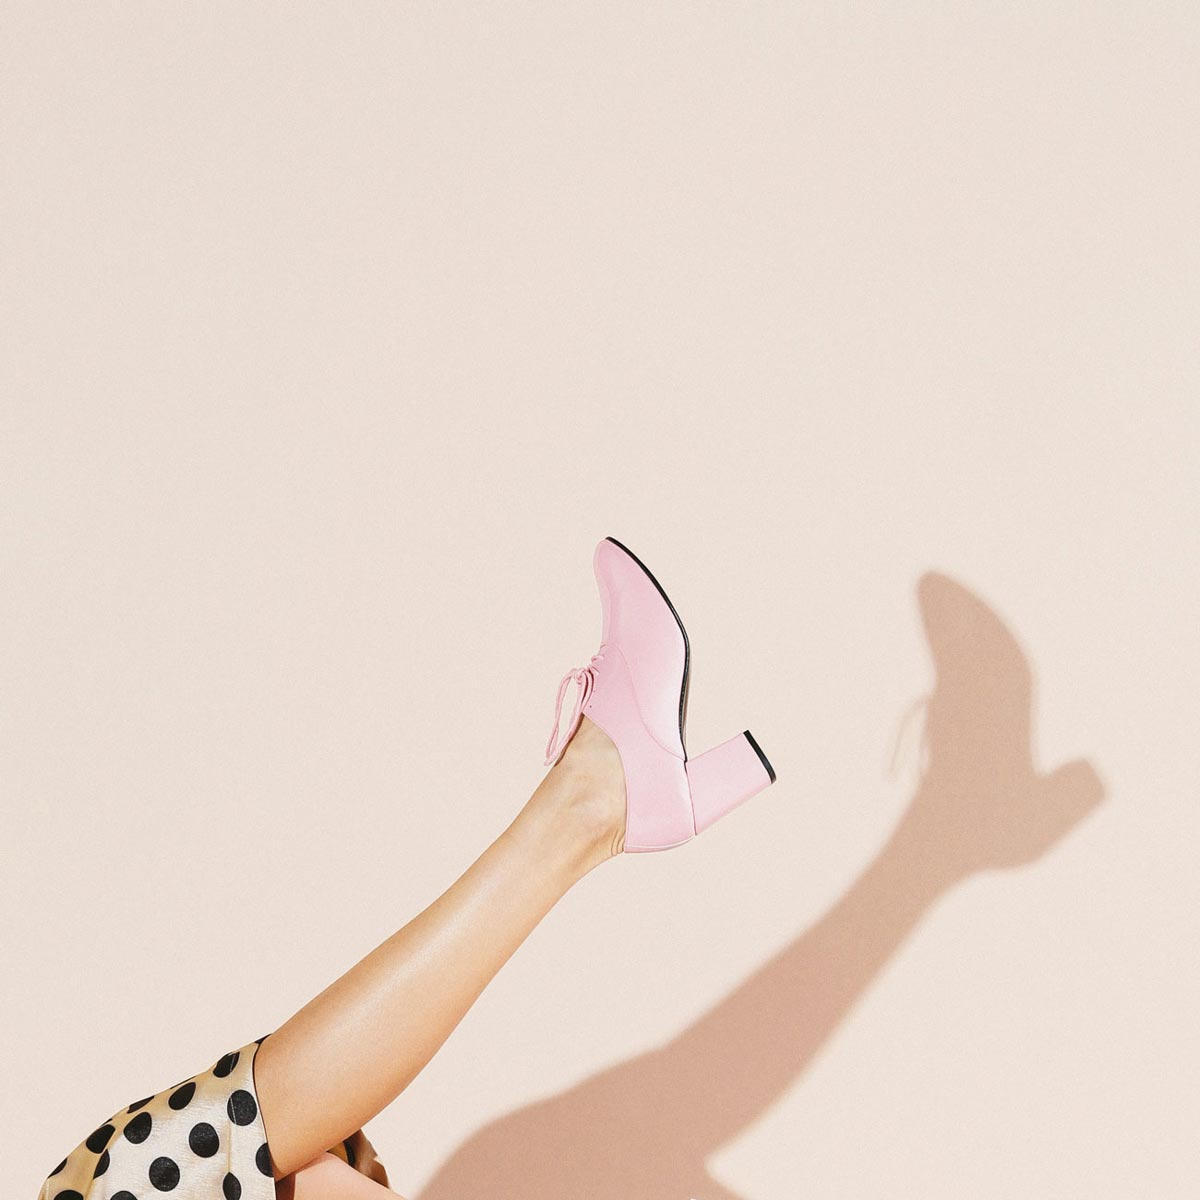 Photo by Max Wanger of leg in pink heeled shoe kicking up